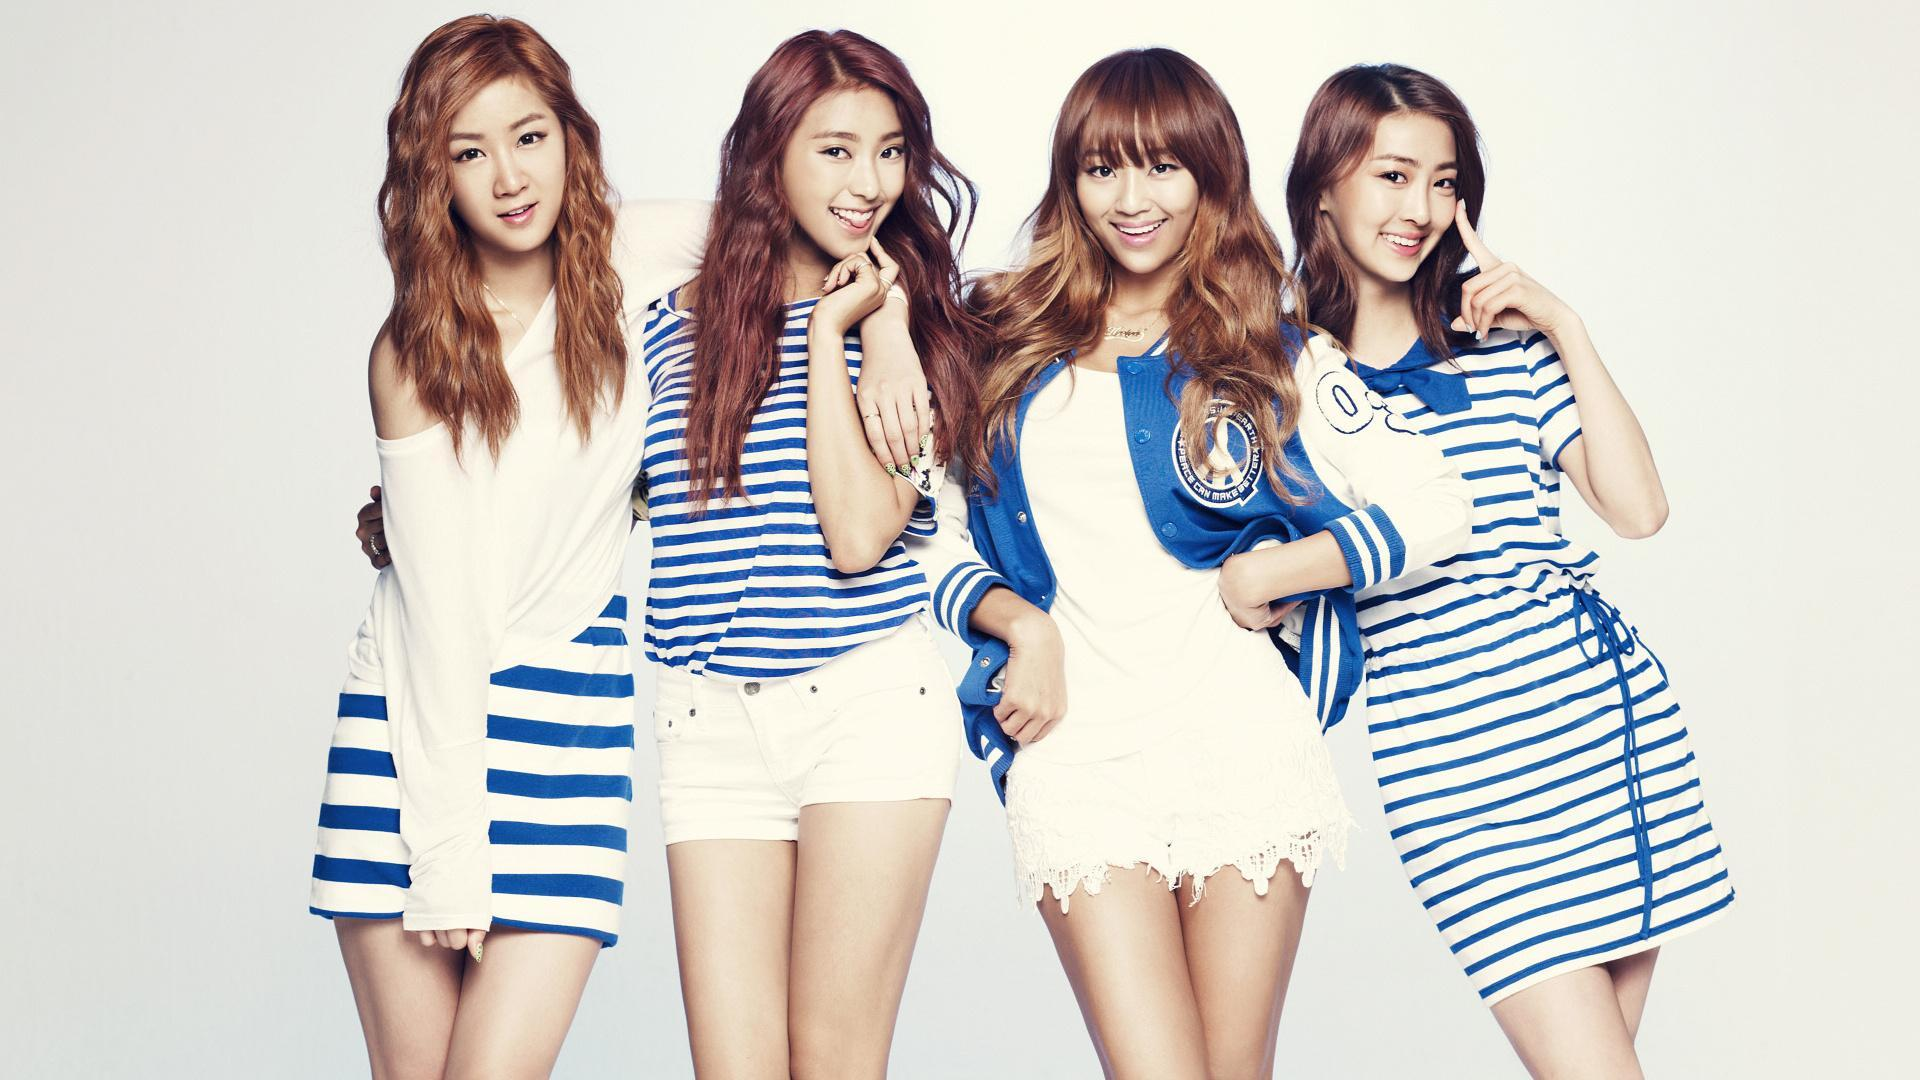 Who is the leader of Sistar?